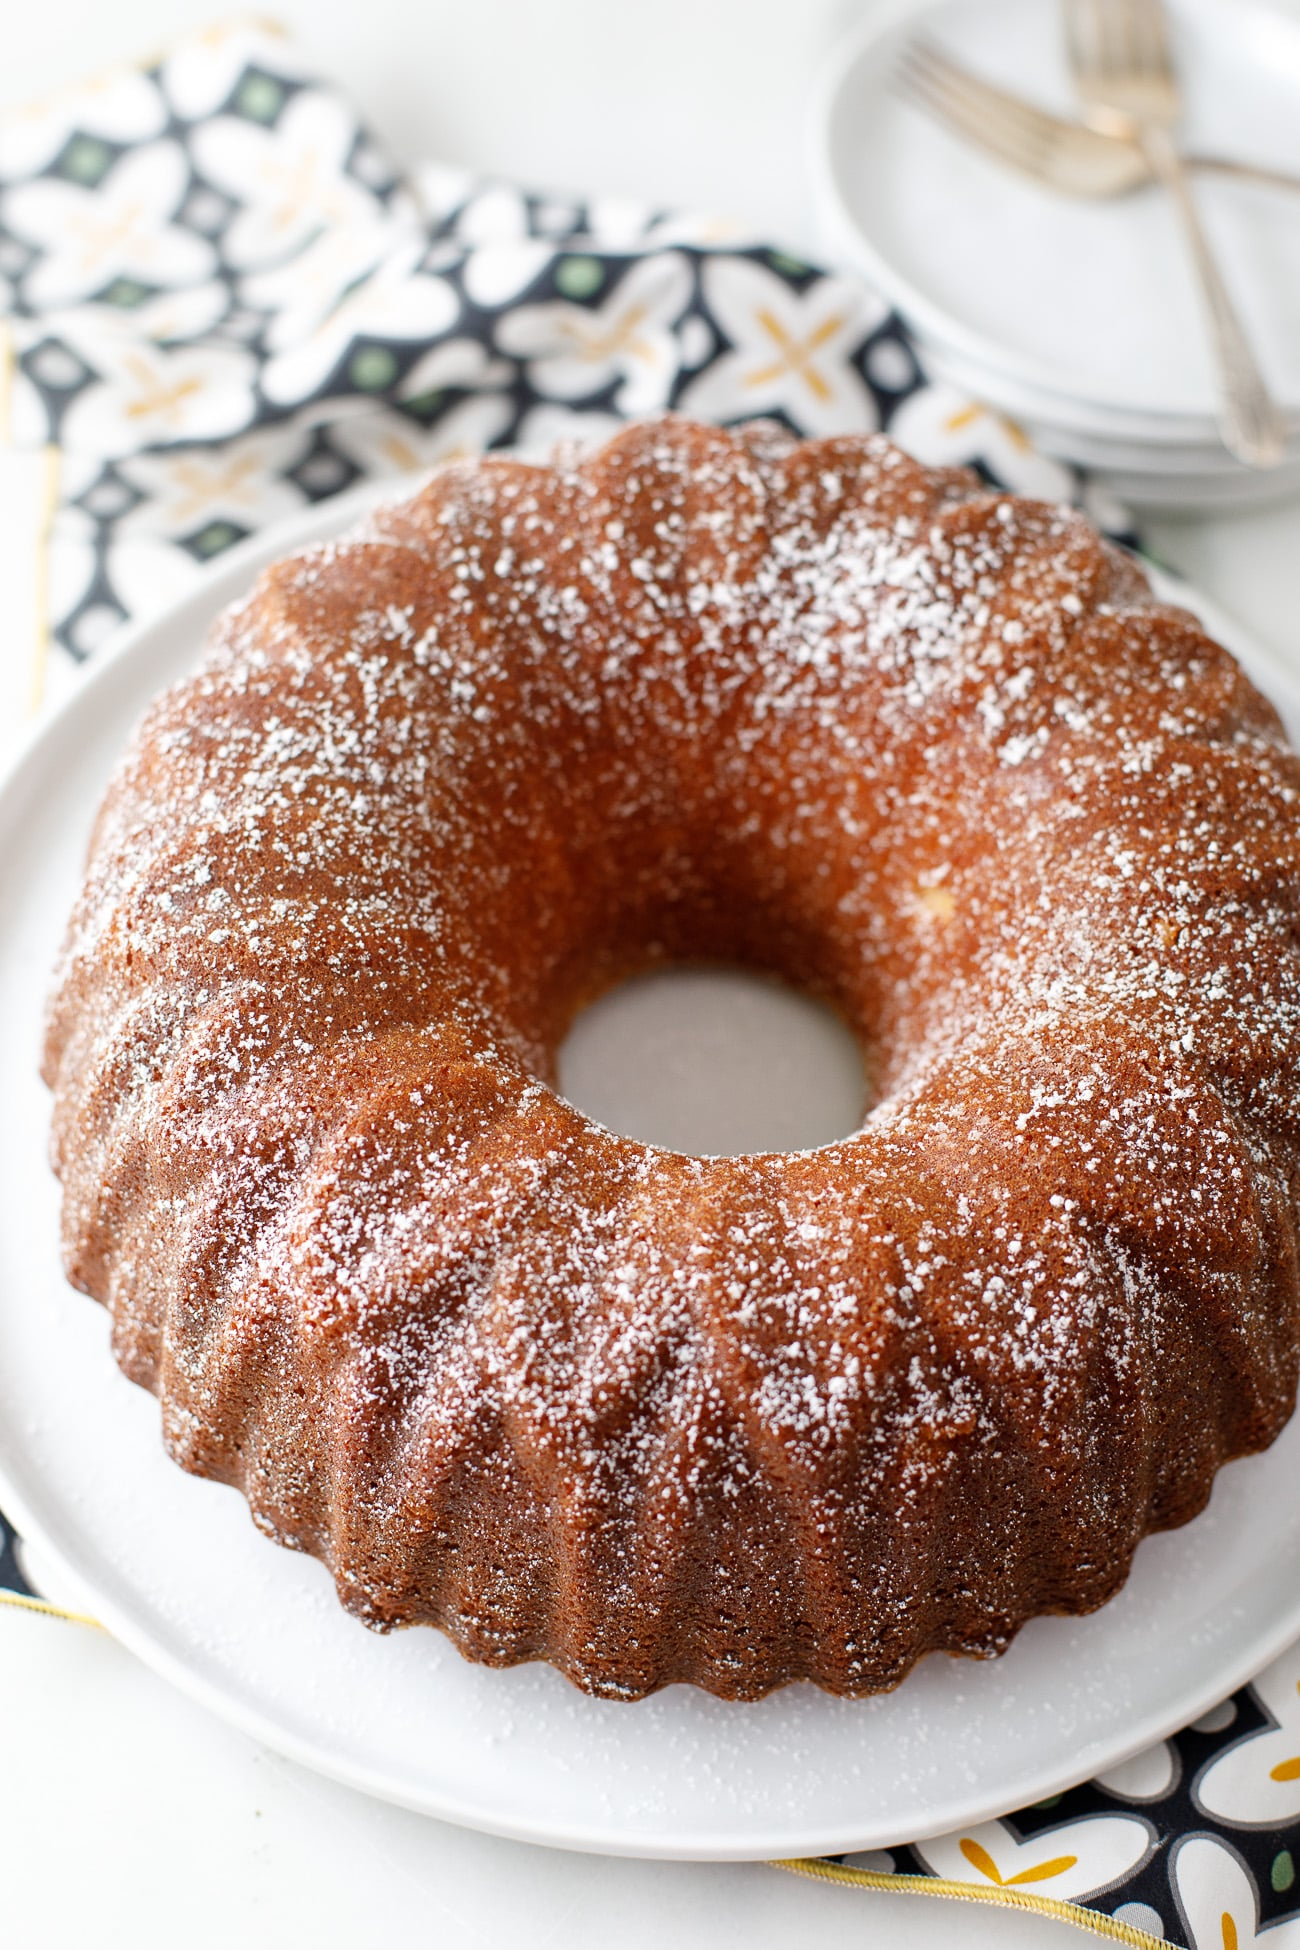 Buttermilk Pound Cake Recipe - this old fashioned buttermilk pound cake is made in a bundt cake pan and couldn't be more moist or delicious. It's SO GOOD. Definitely making this again.